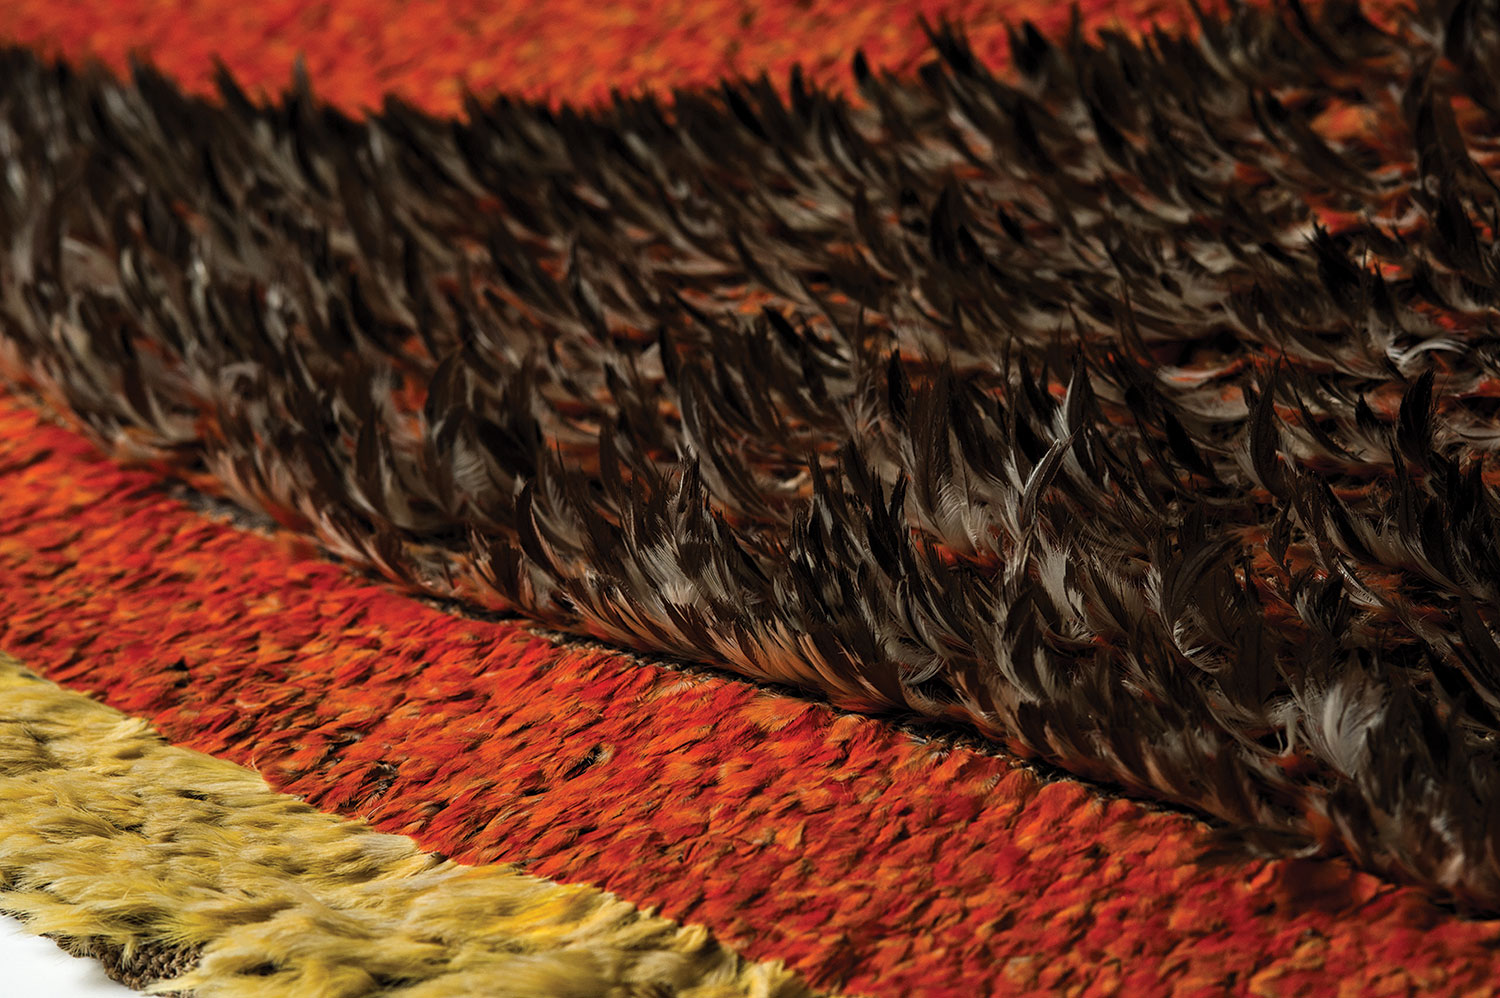 Red-orange, brown, and yellow featherwork